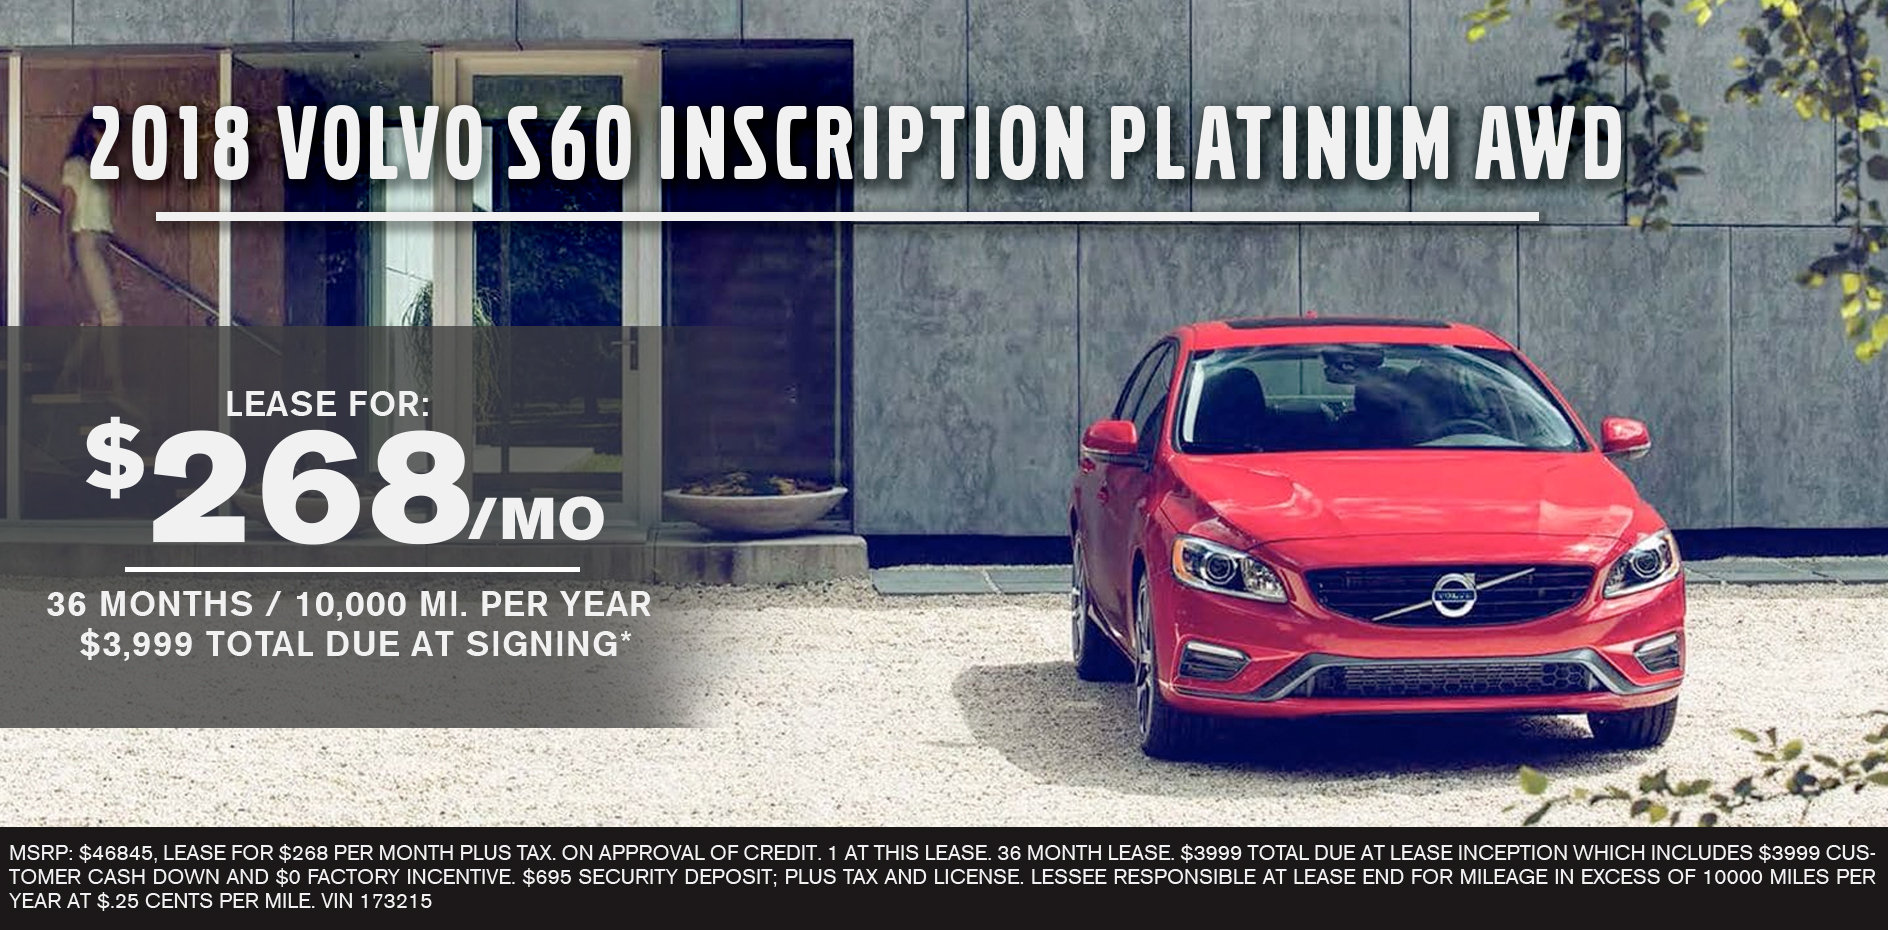 2018 Volvo S60 Inscription Platinum AWD